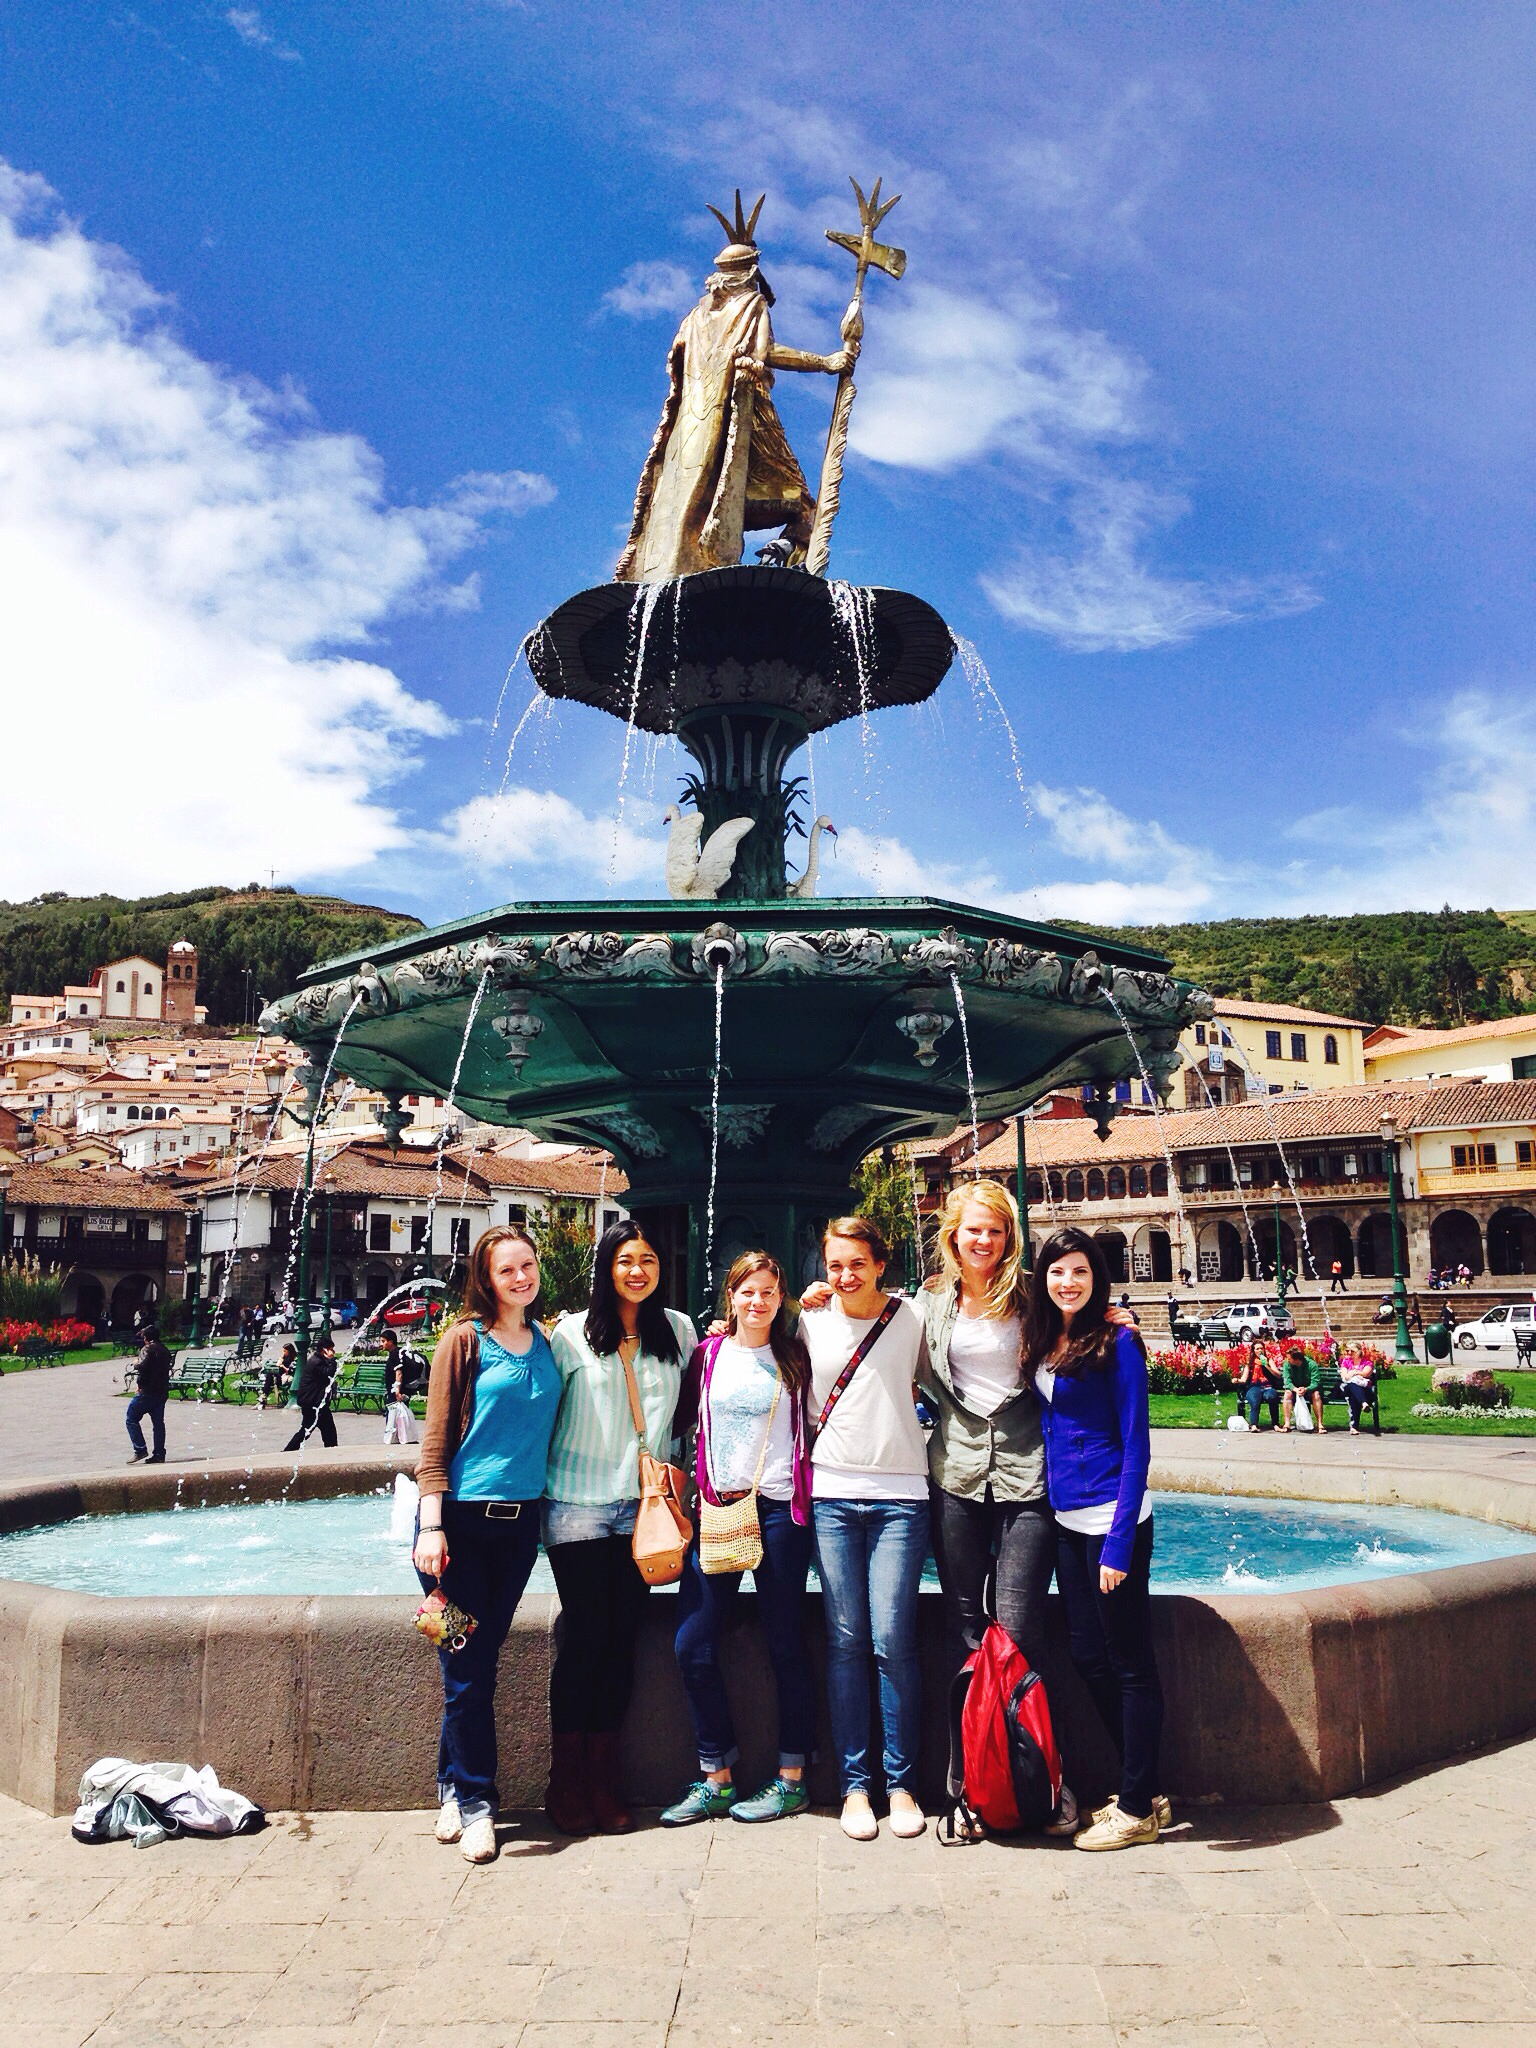 Meet our wonderful fall interns in Cusco (minus Kirstyn Powell) with our founder, Lauren Braun! From August through December, this team has followed up with and given final questionnaires to the more than 100 moms in our Cusco pilot study. We're also GPS'ing every mom's house and interviewing nurses about the bracelet. We will certainly miss you girls! Photo taken: Dec. 3.